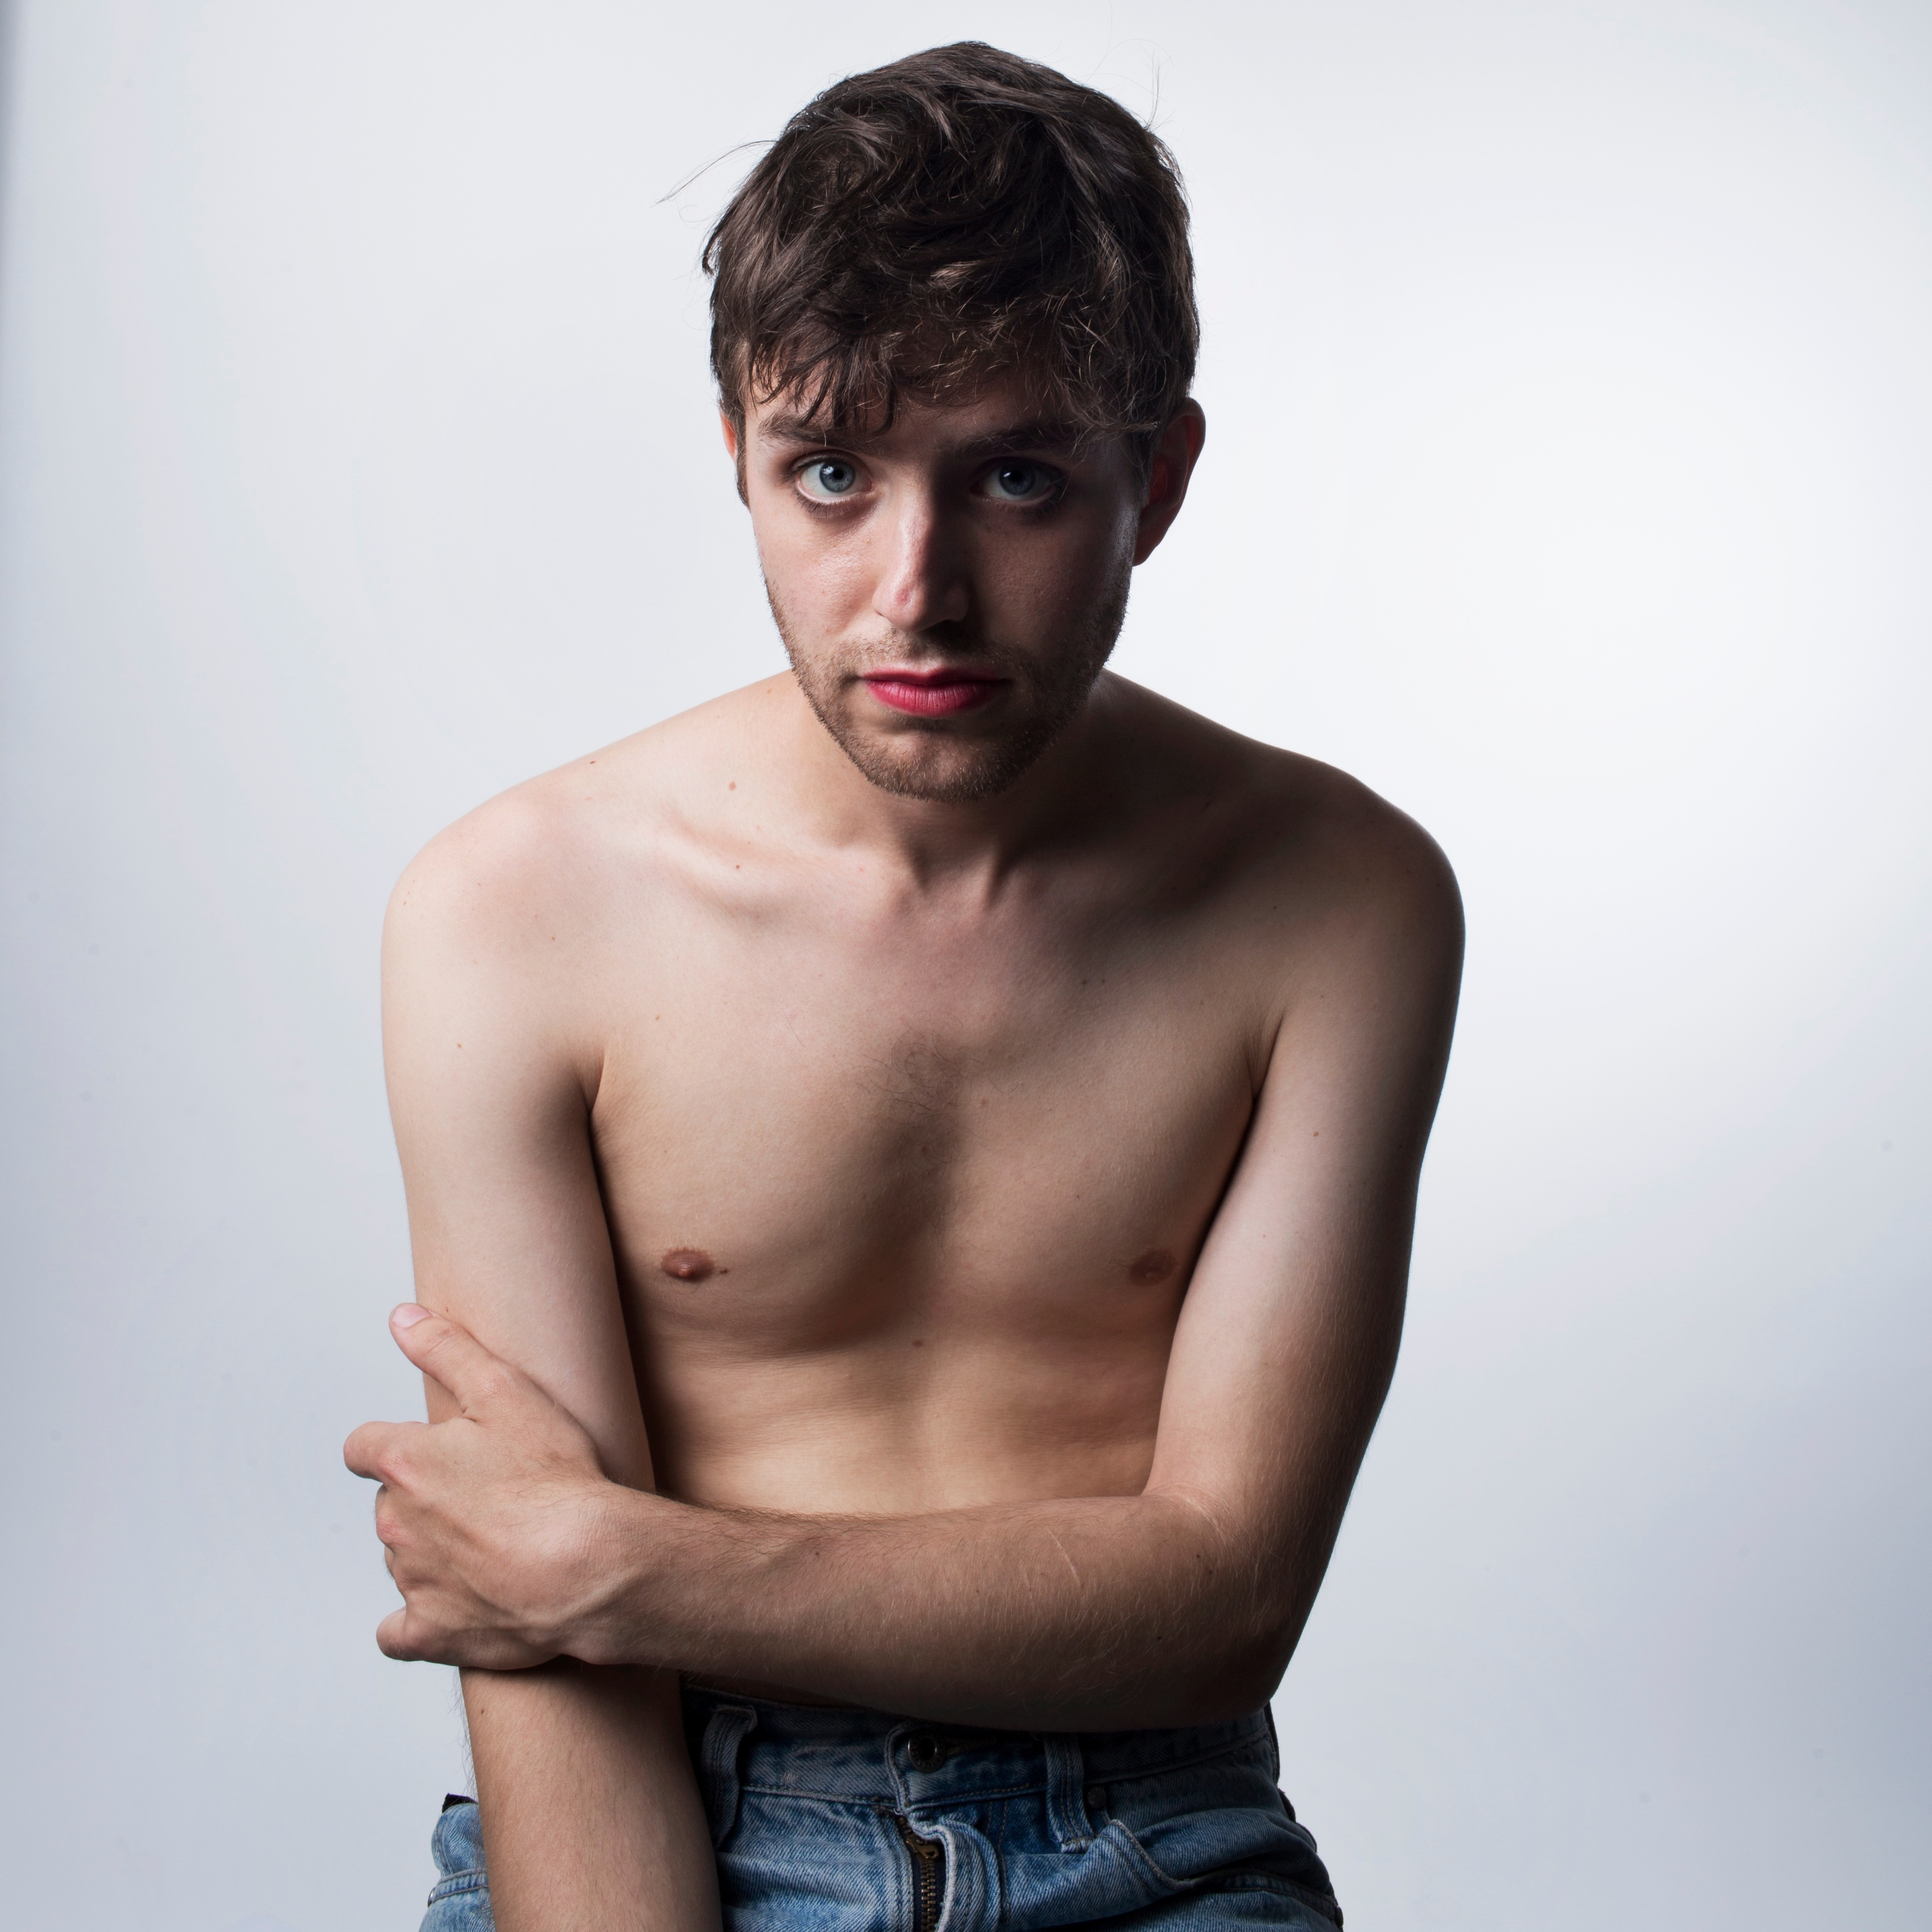 Catching Up With Ezra Furman